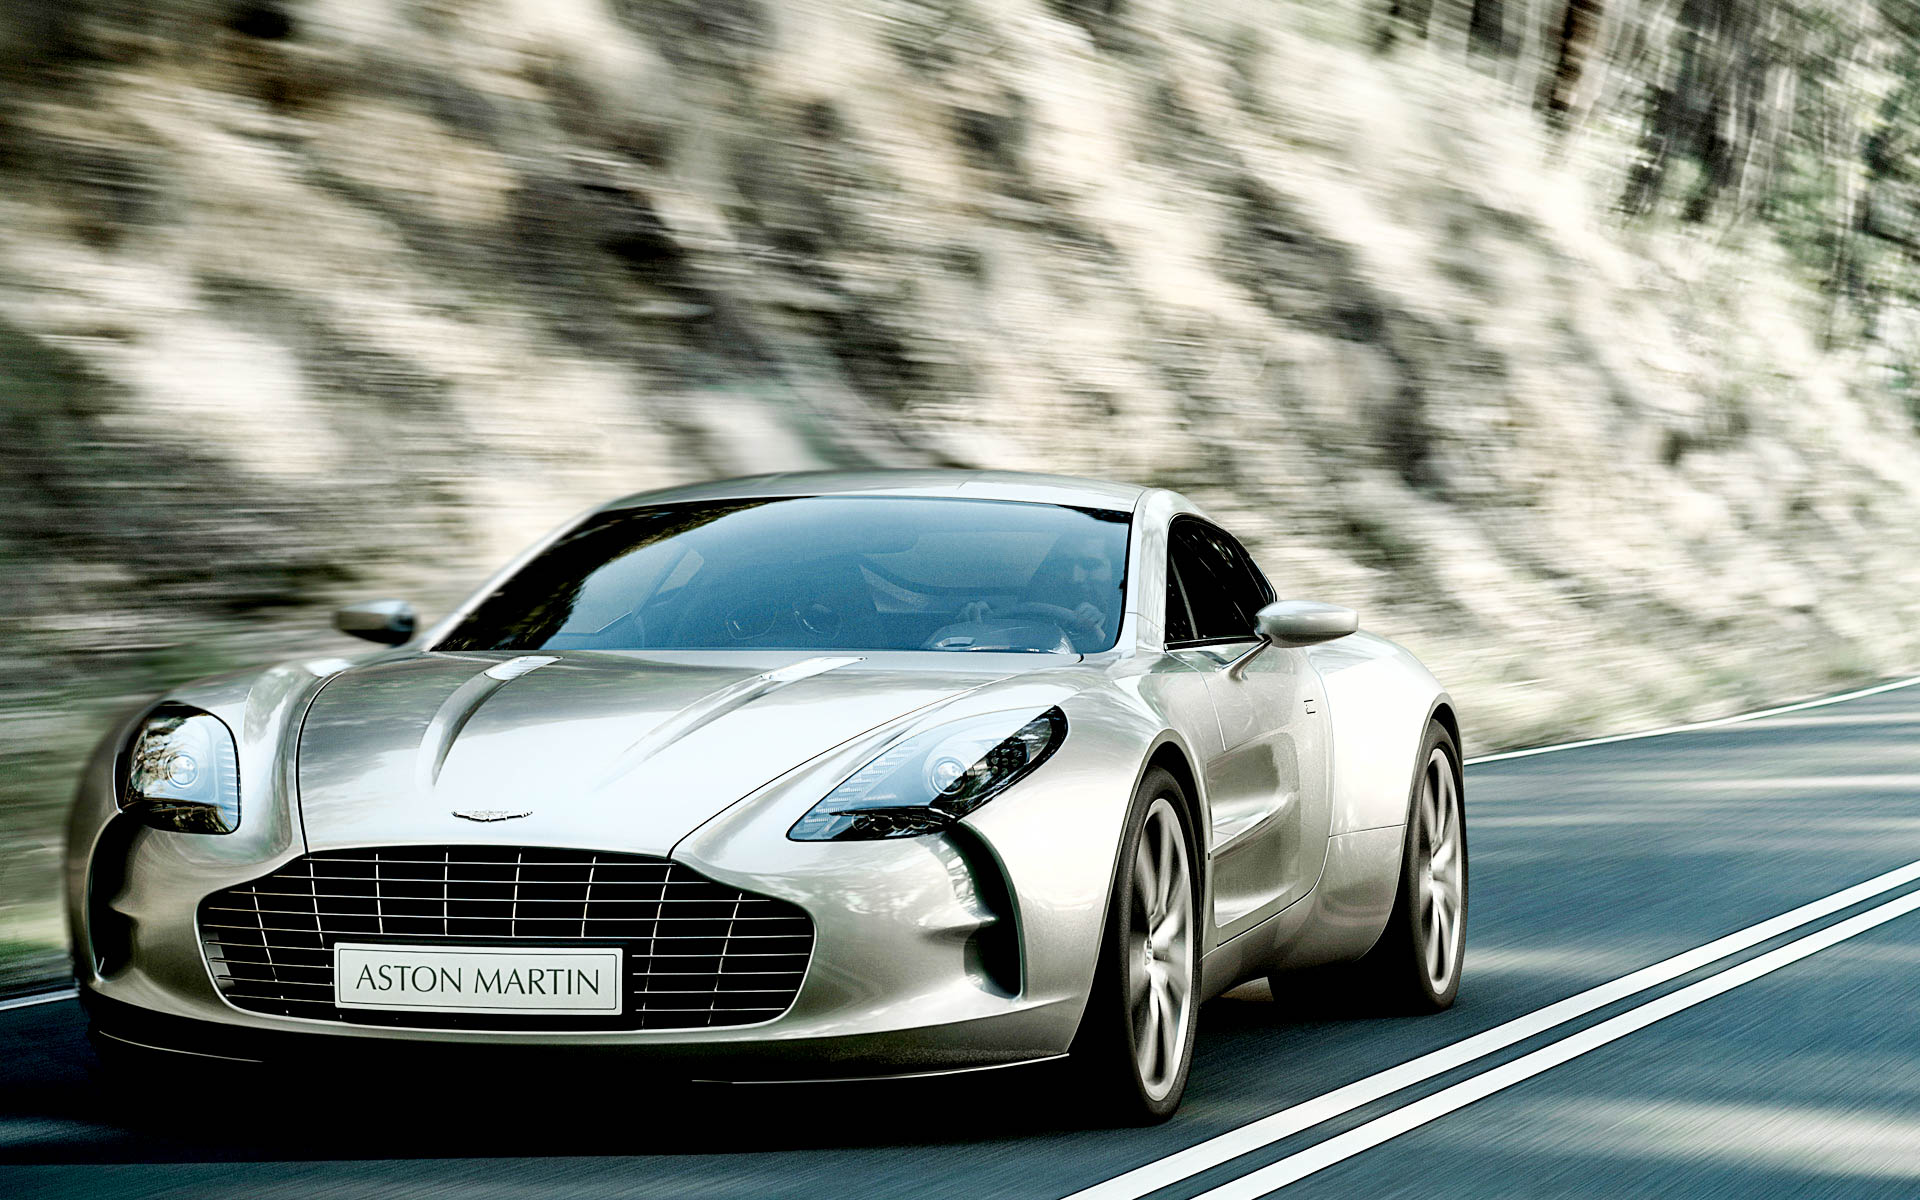 Aston Martin One 77 Awesome Hd Wallpapers 2017 All Hd Wallpapers